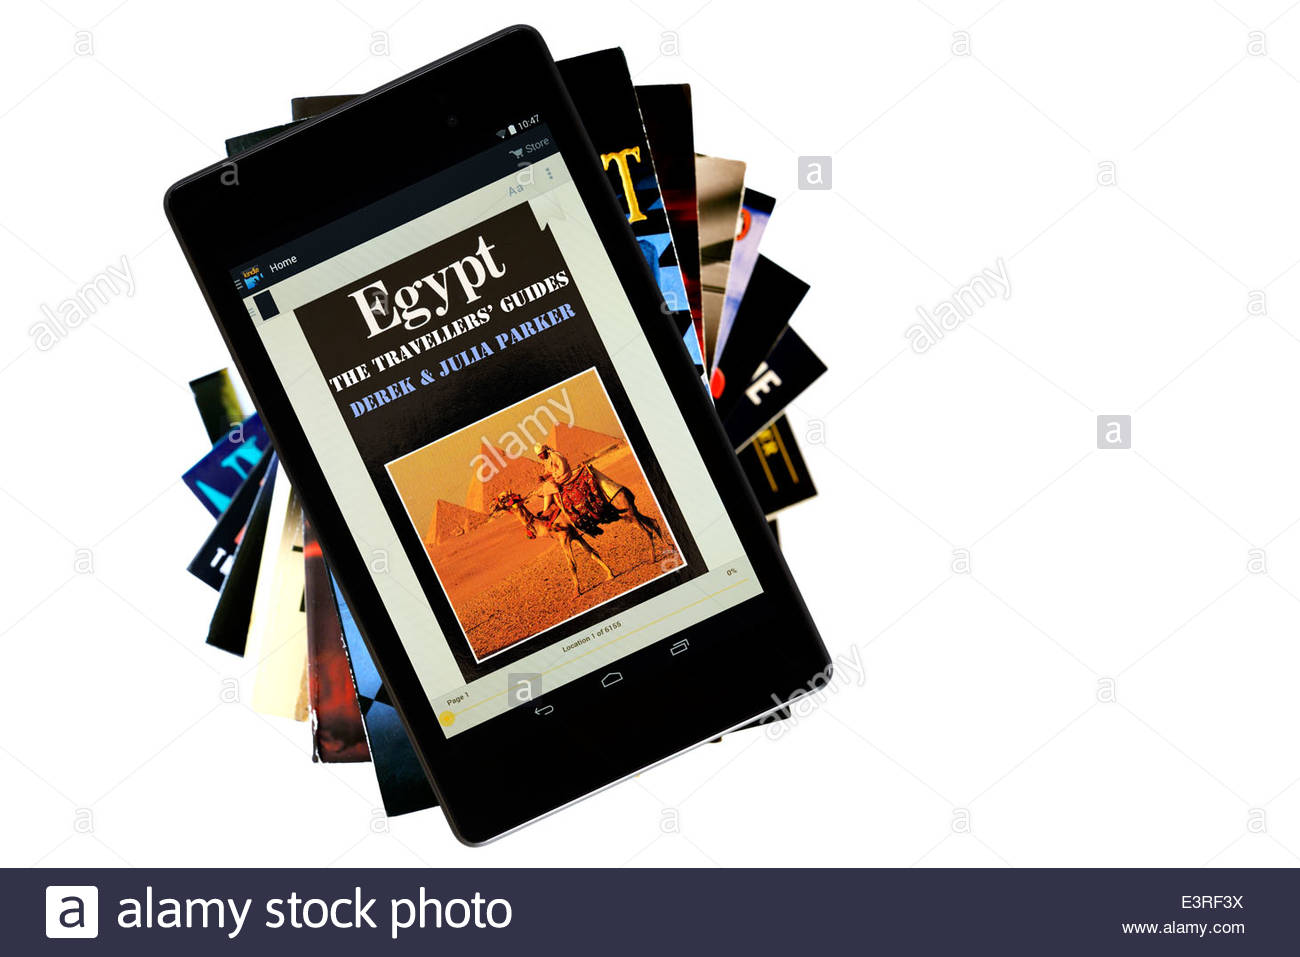 Old travel guide to Egypt, digital book cover on PC tablet, England - Stock Image